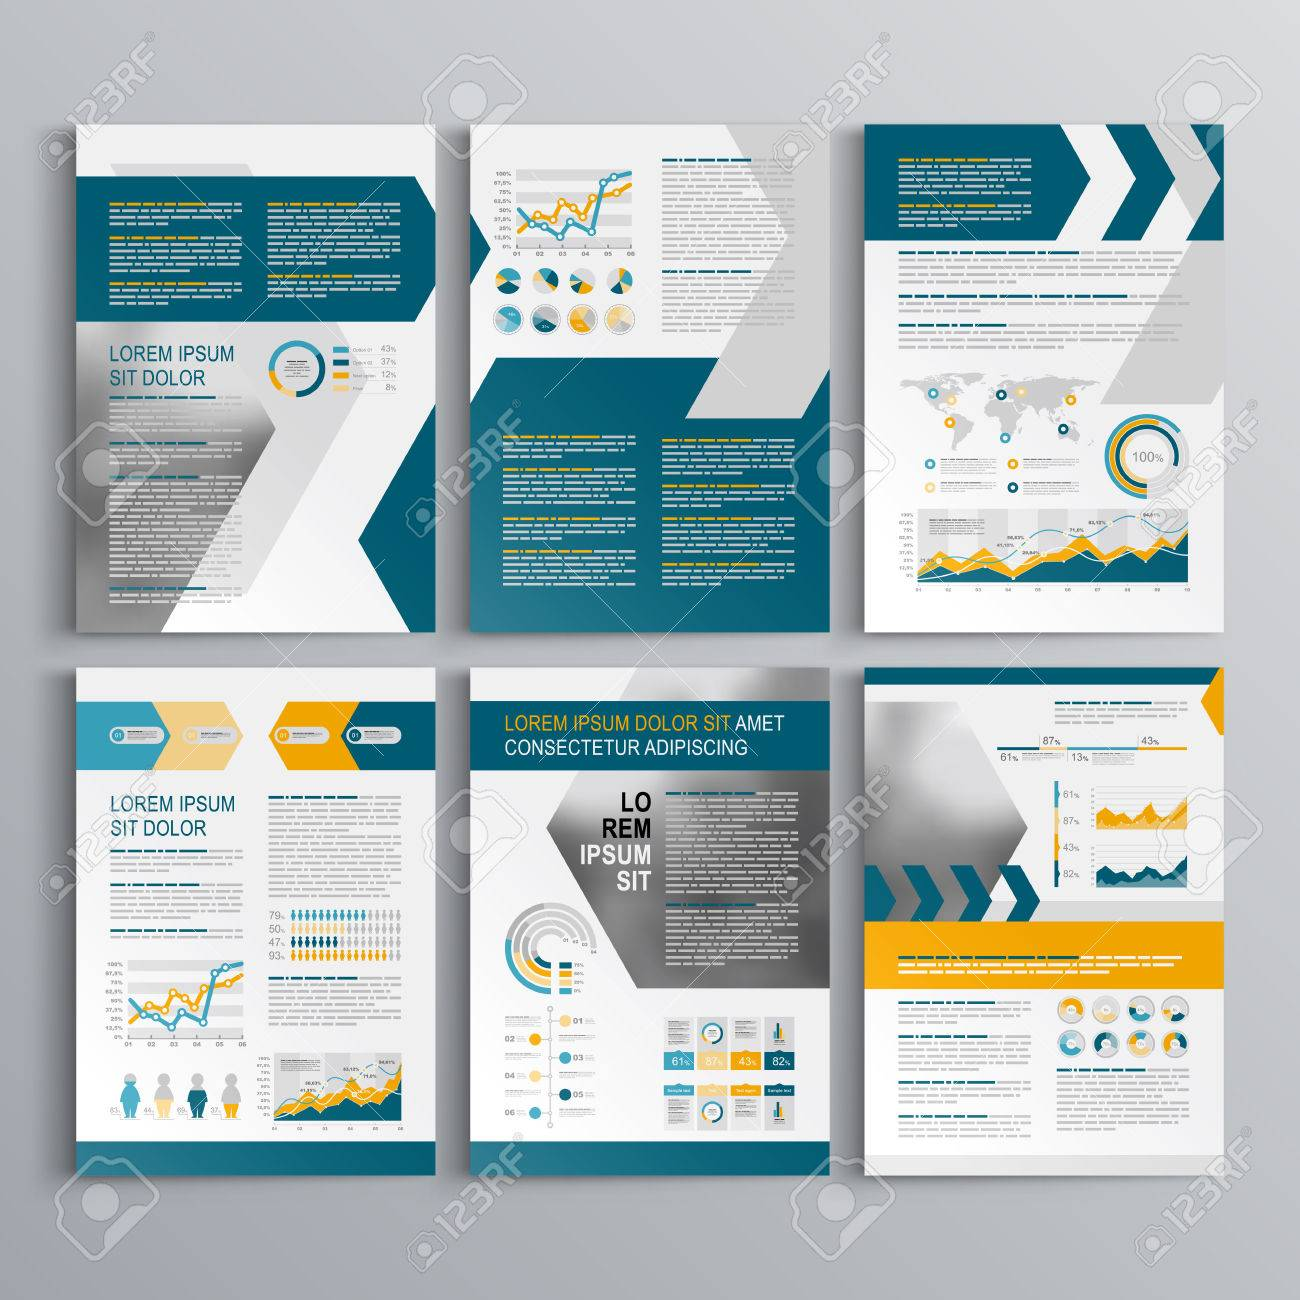 Dynamic Brochure Template Design With Yellow And Blue Arrows - Infographic brochure template